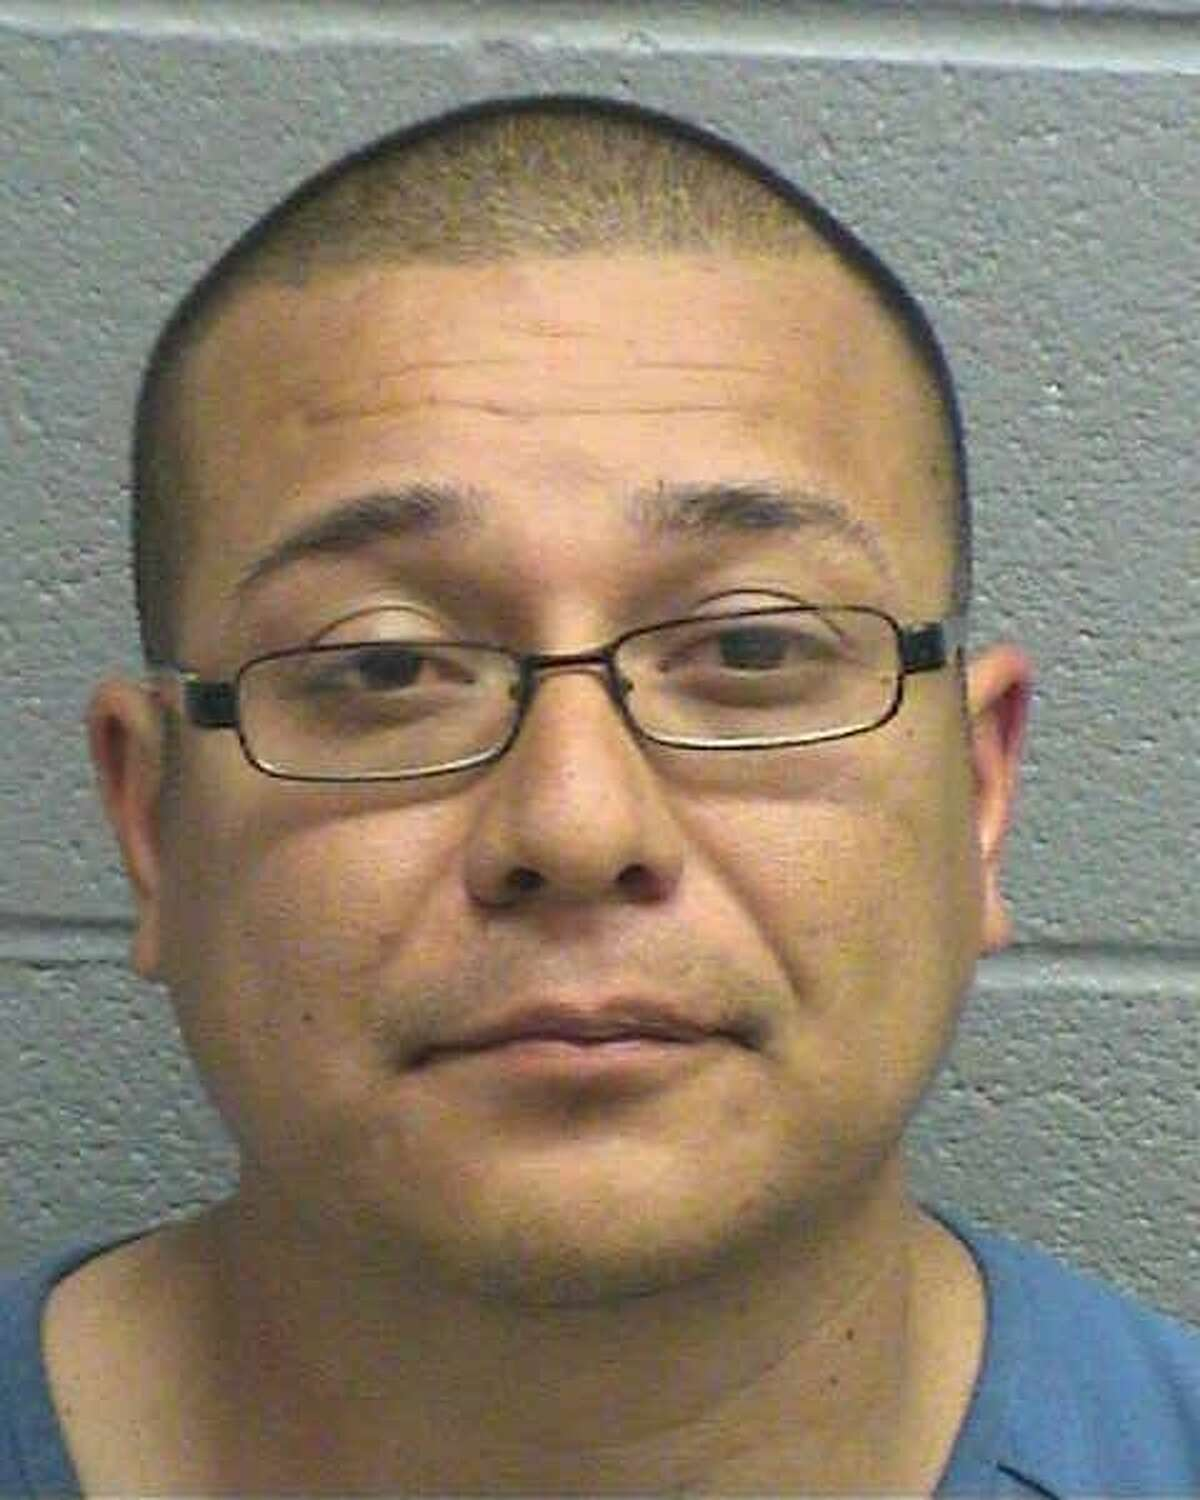 Raymundo Cambray Jr., 36, of Bay City, was arrested May 12 on a second-degree felony charge of aggravated assault with a deadly weapon.Cambray wielded a knife during an altercation with another man. He claimed and the alleged victim were members of two different gangs.If convicted, Cambray faces up to 20 years in prison.